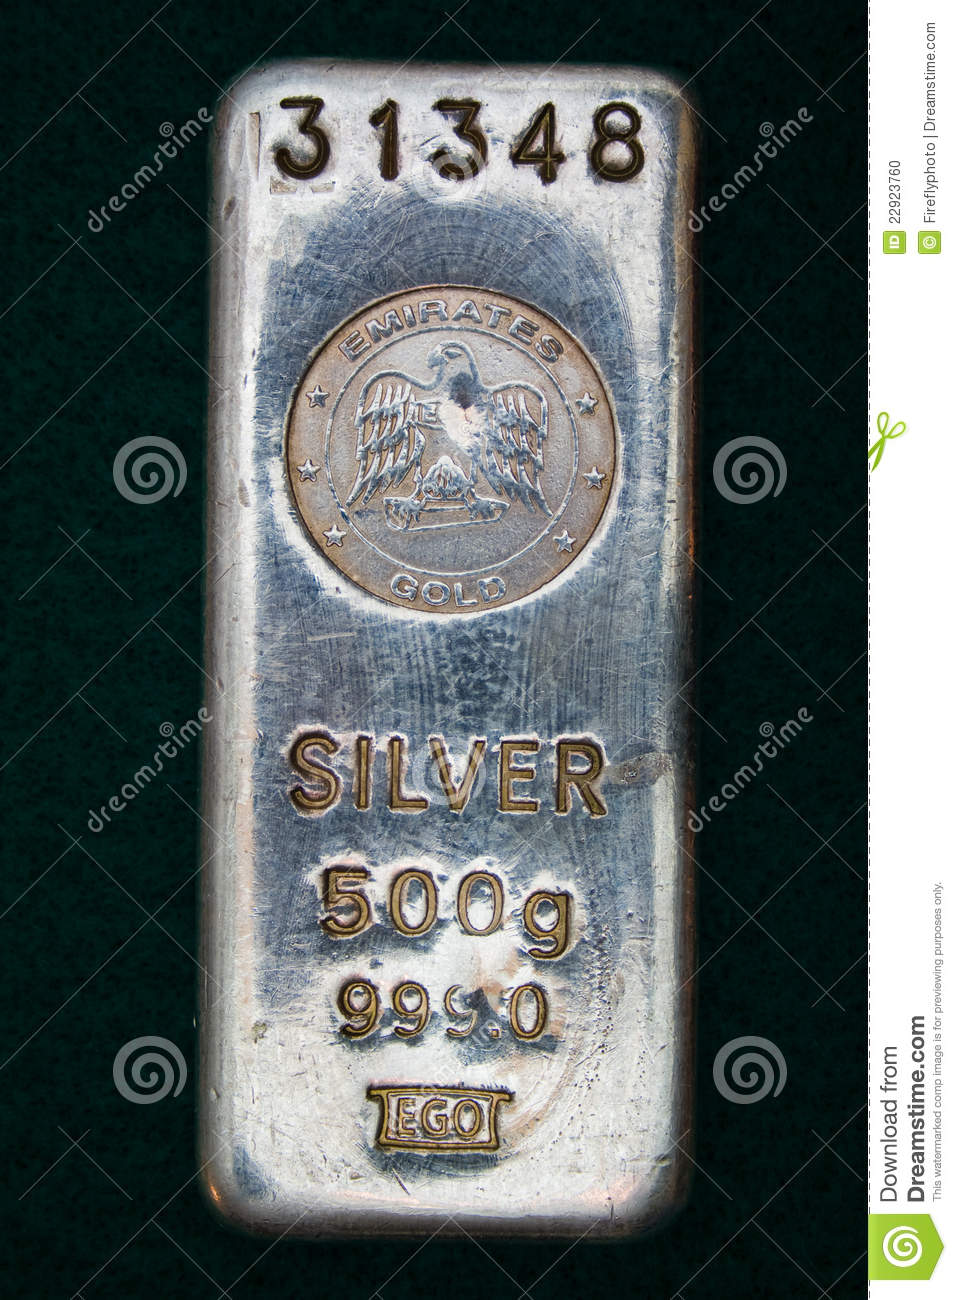 United Arab Emirates Silver Bullion Bar Editorial Image